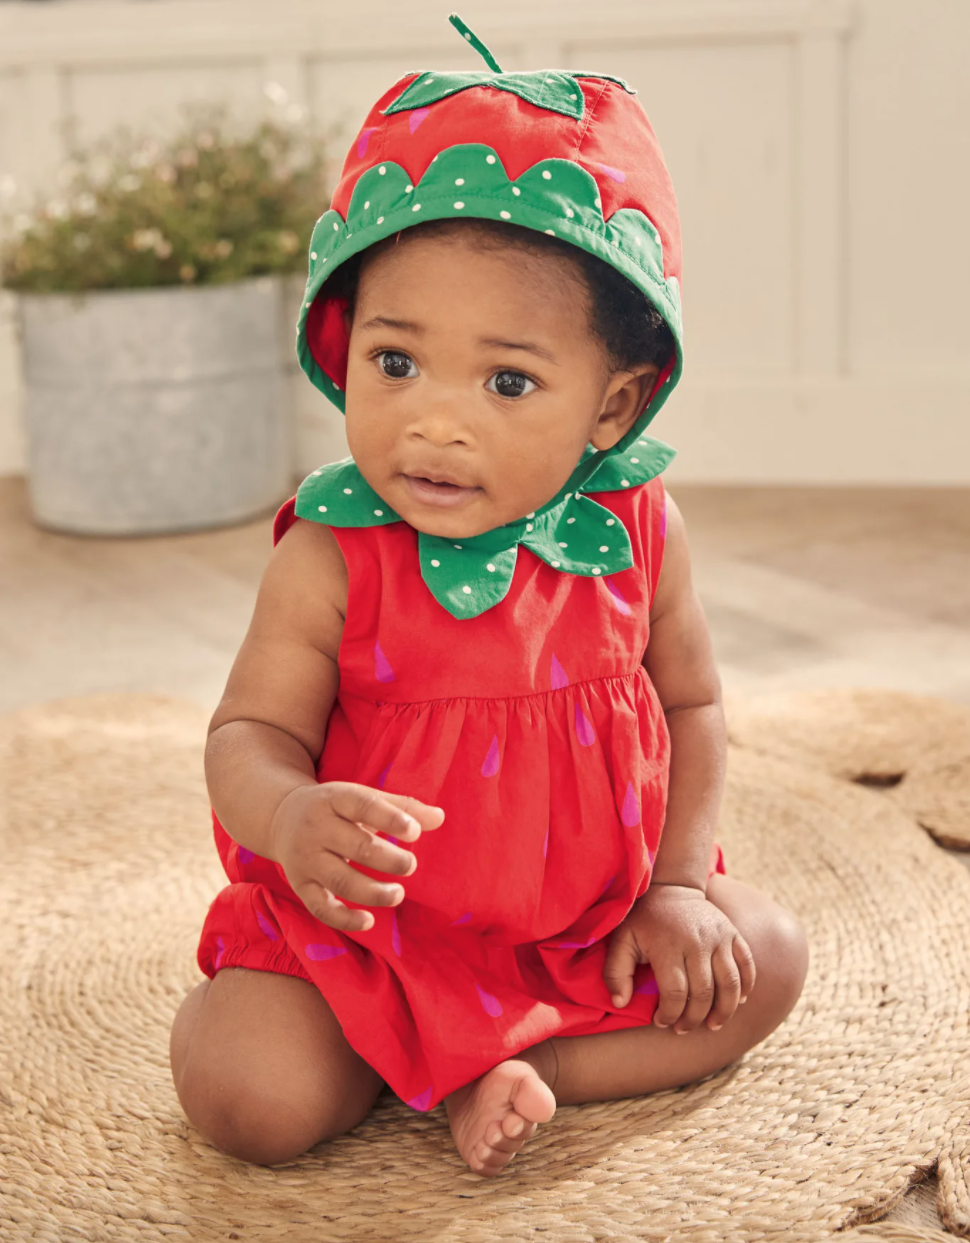 Baby wearing a strawberry bubble romper and a matching hat while sitting on a rug.